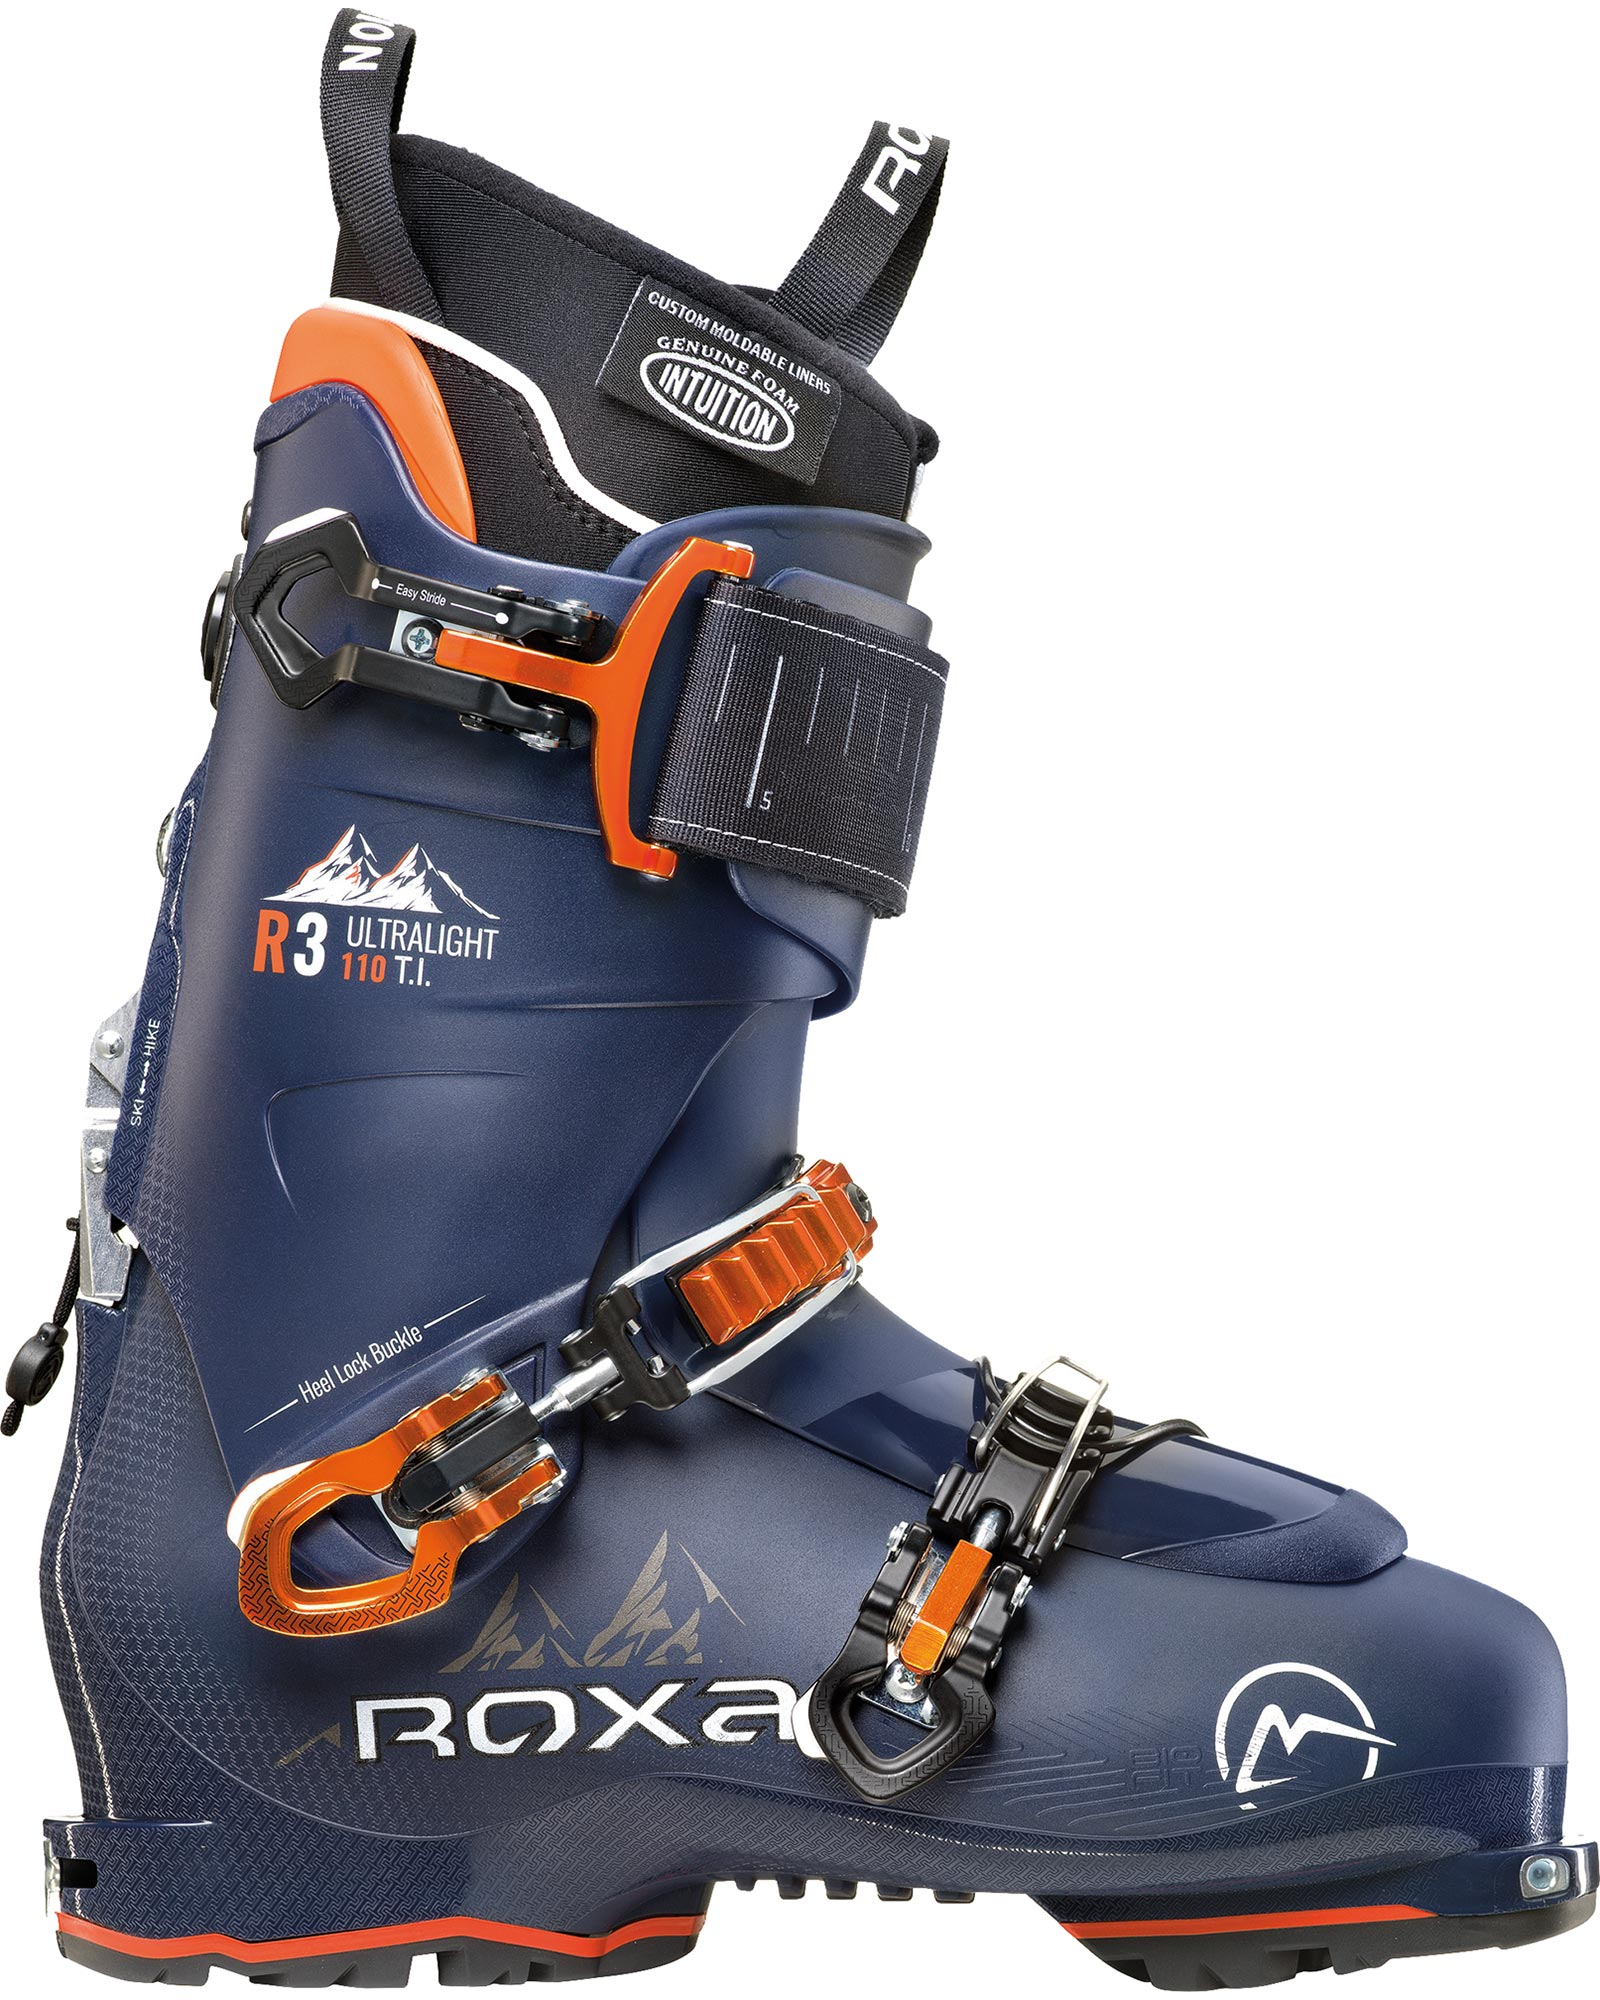 Roxa Men's R3 110 T.I. I.R. GW Backcountry Ski Boots 2020 / 2021 0